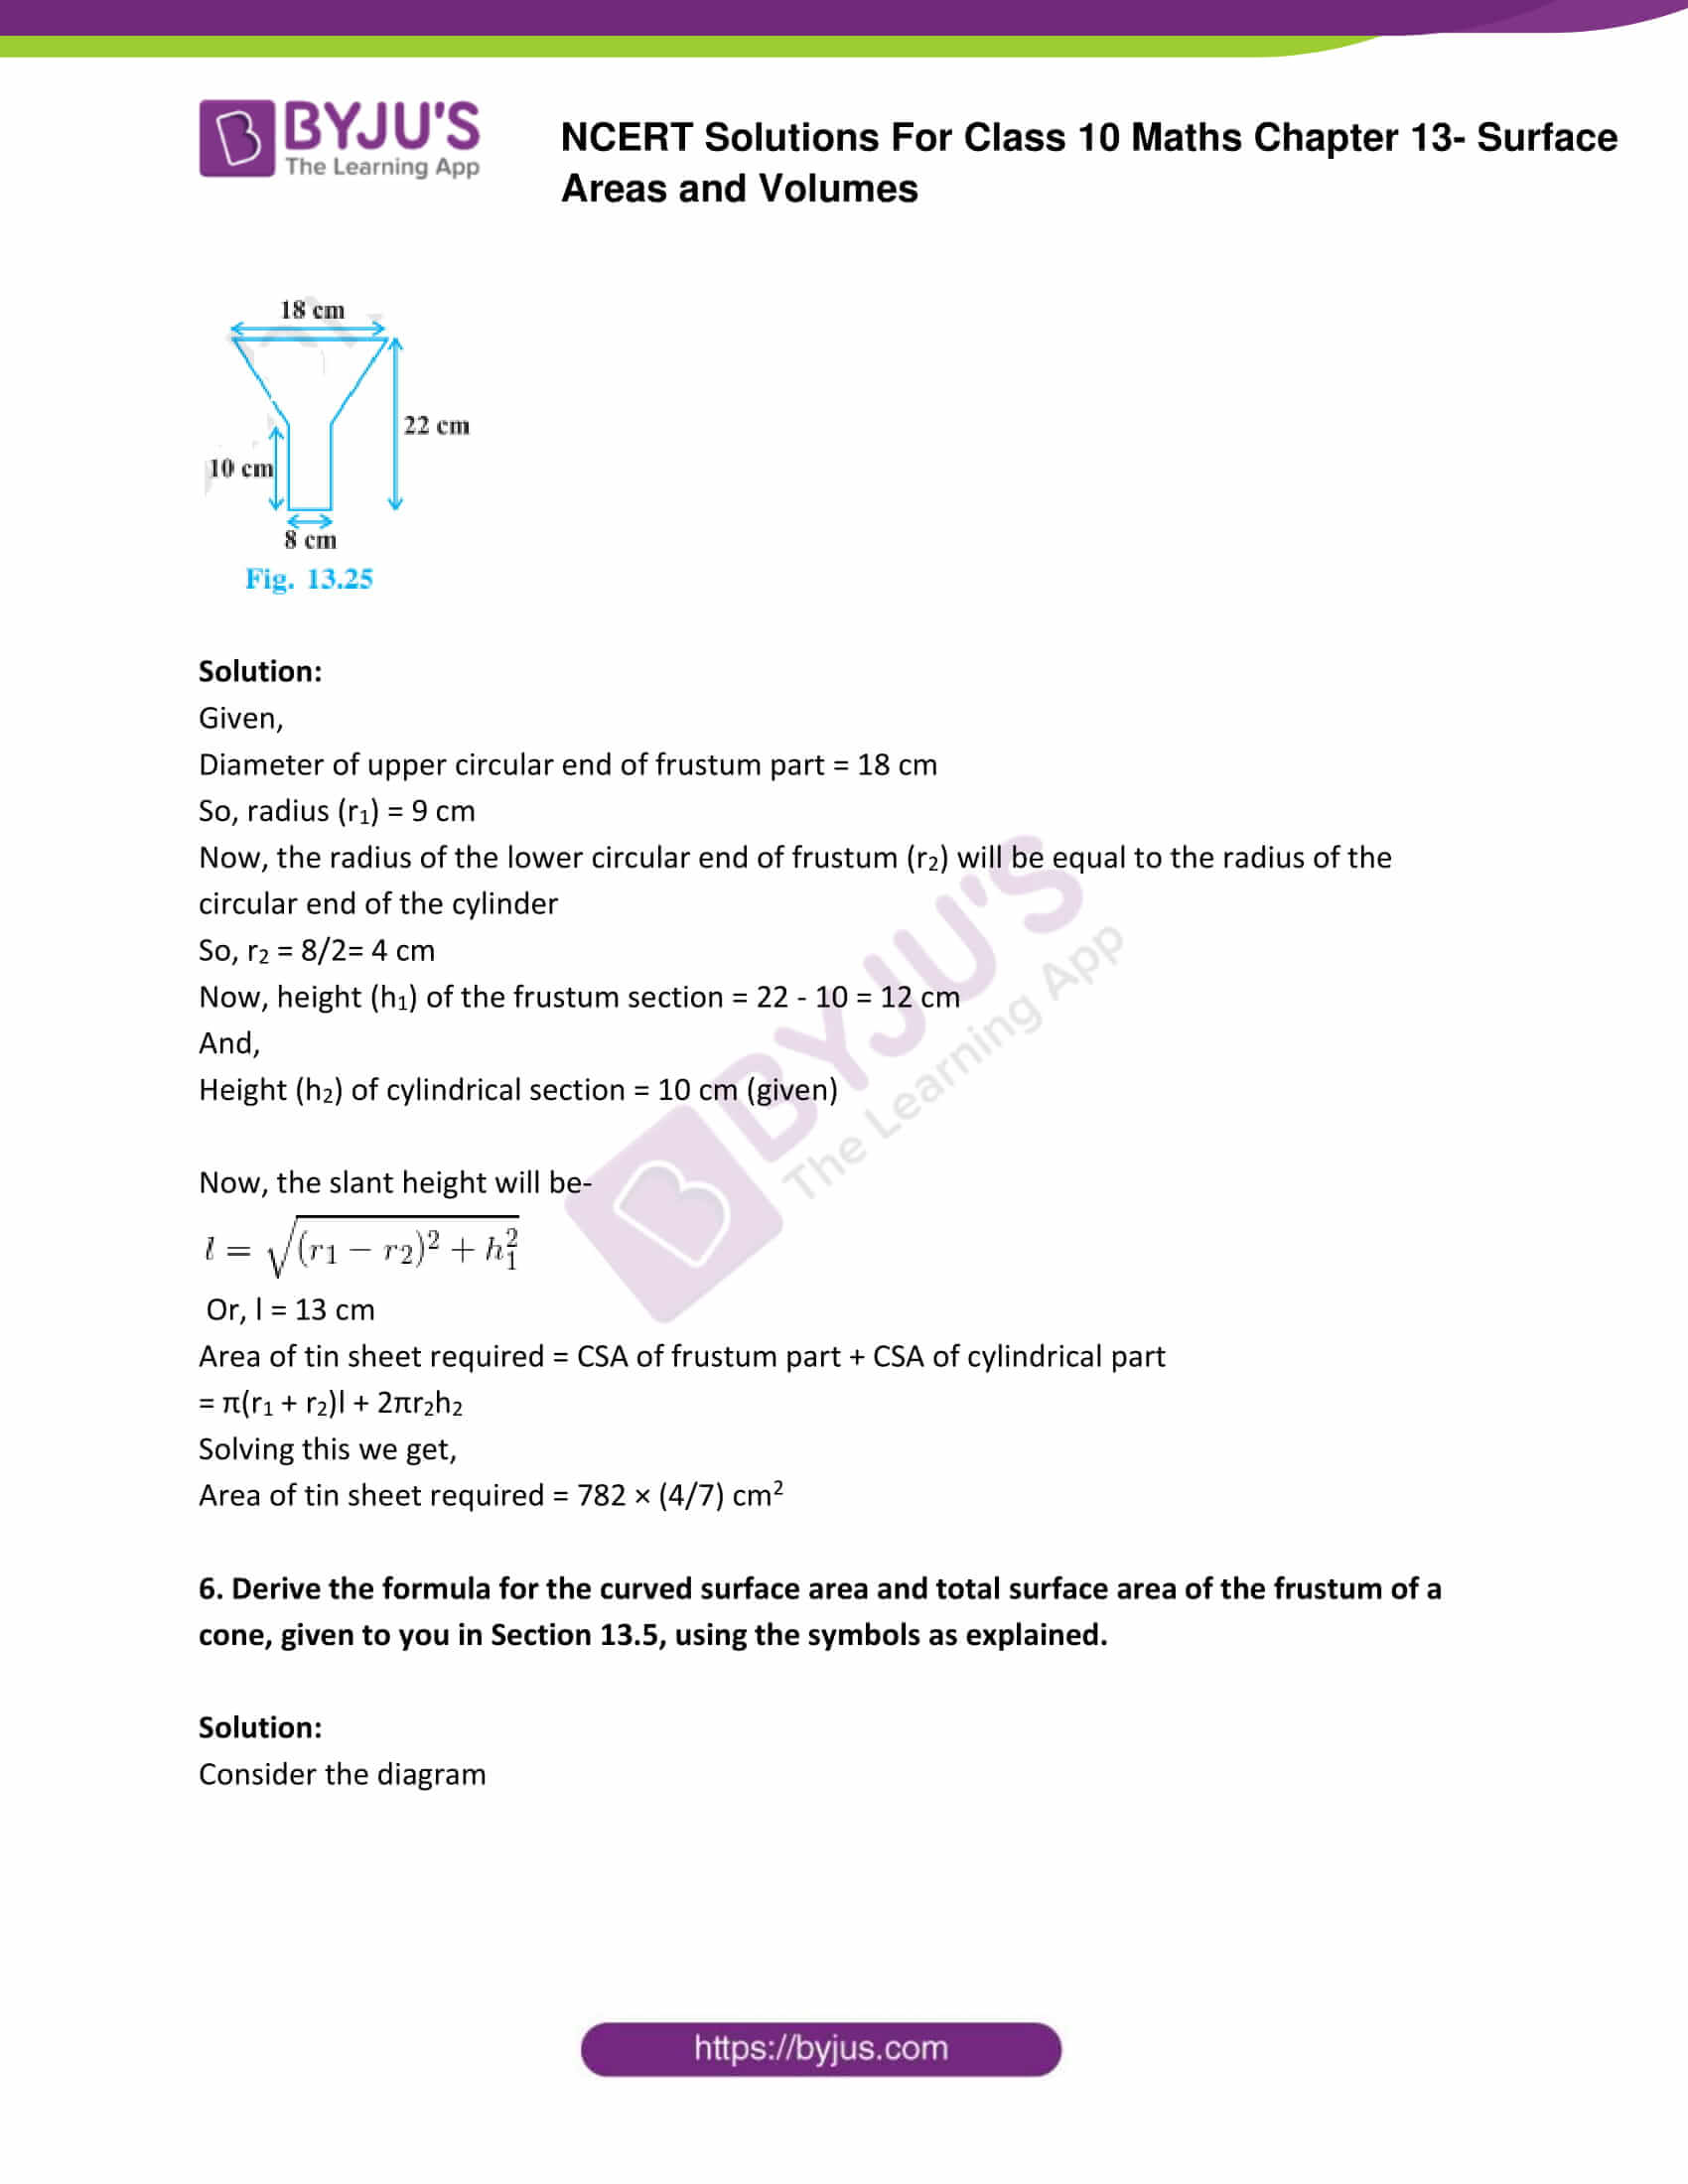 NCERT Solutions Class 10 Maths Chapter 13 Surface Areas and Volumes Part 28